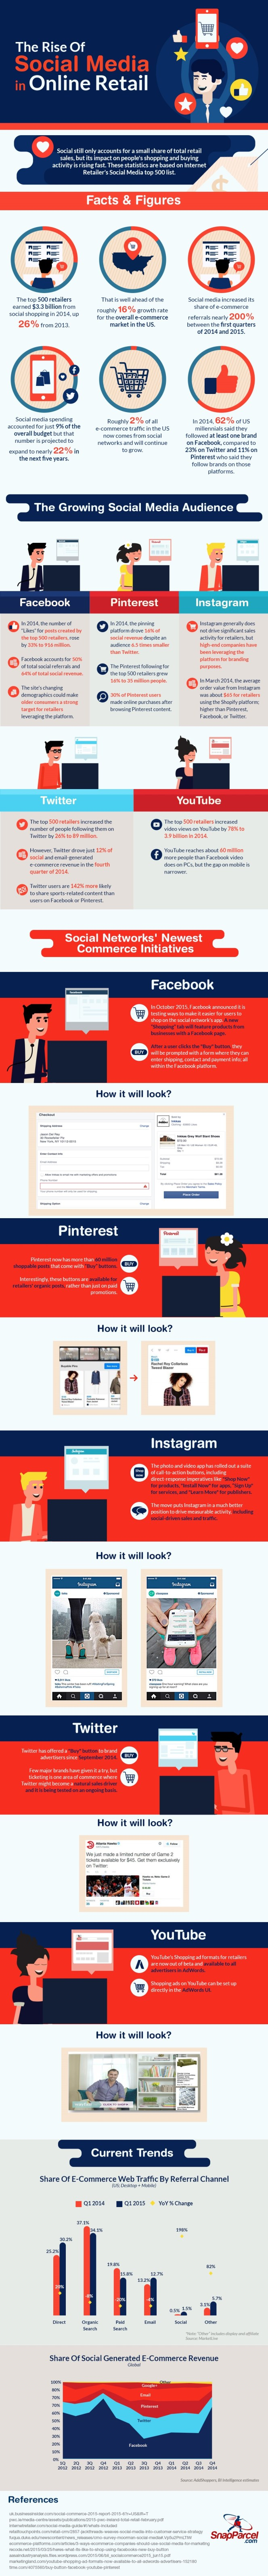 The Rise of Social Media in Online Retail [Infographic]